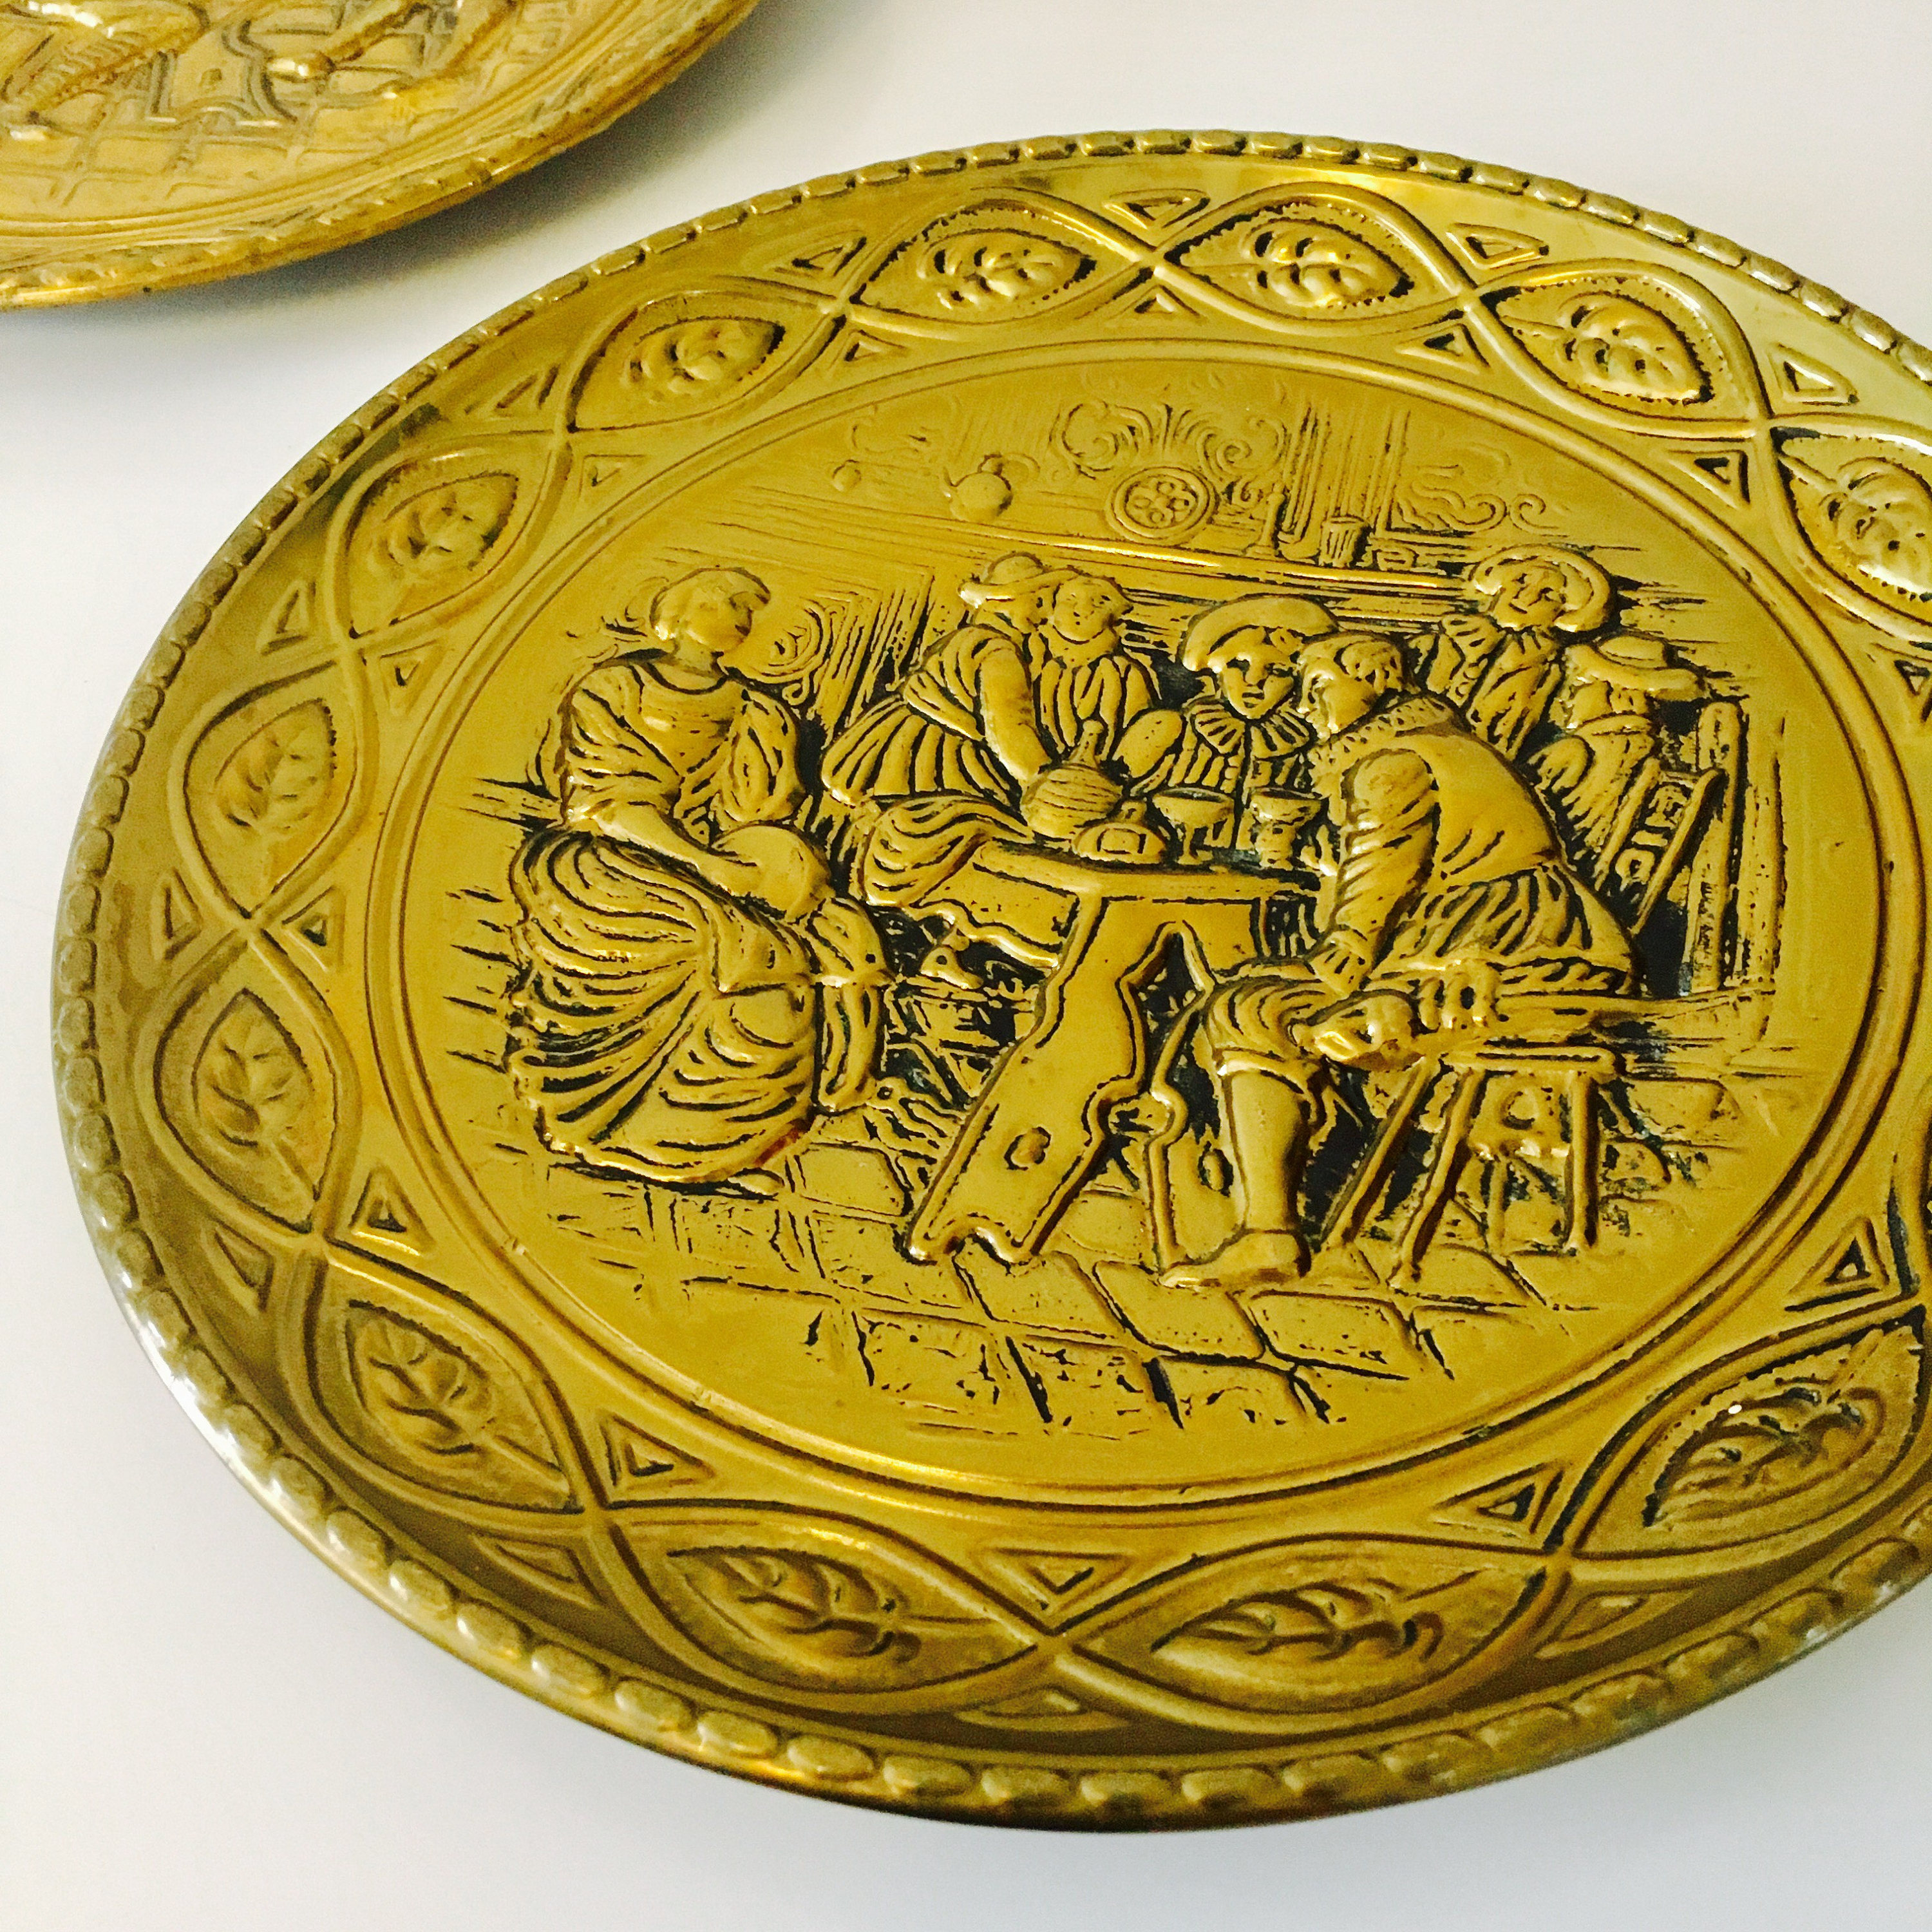 Colorful Brass Wall Plates Decor Crest - Wall Art Collections ...